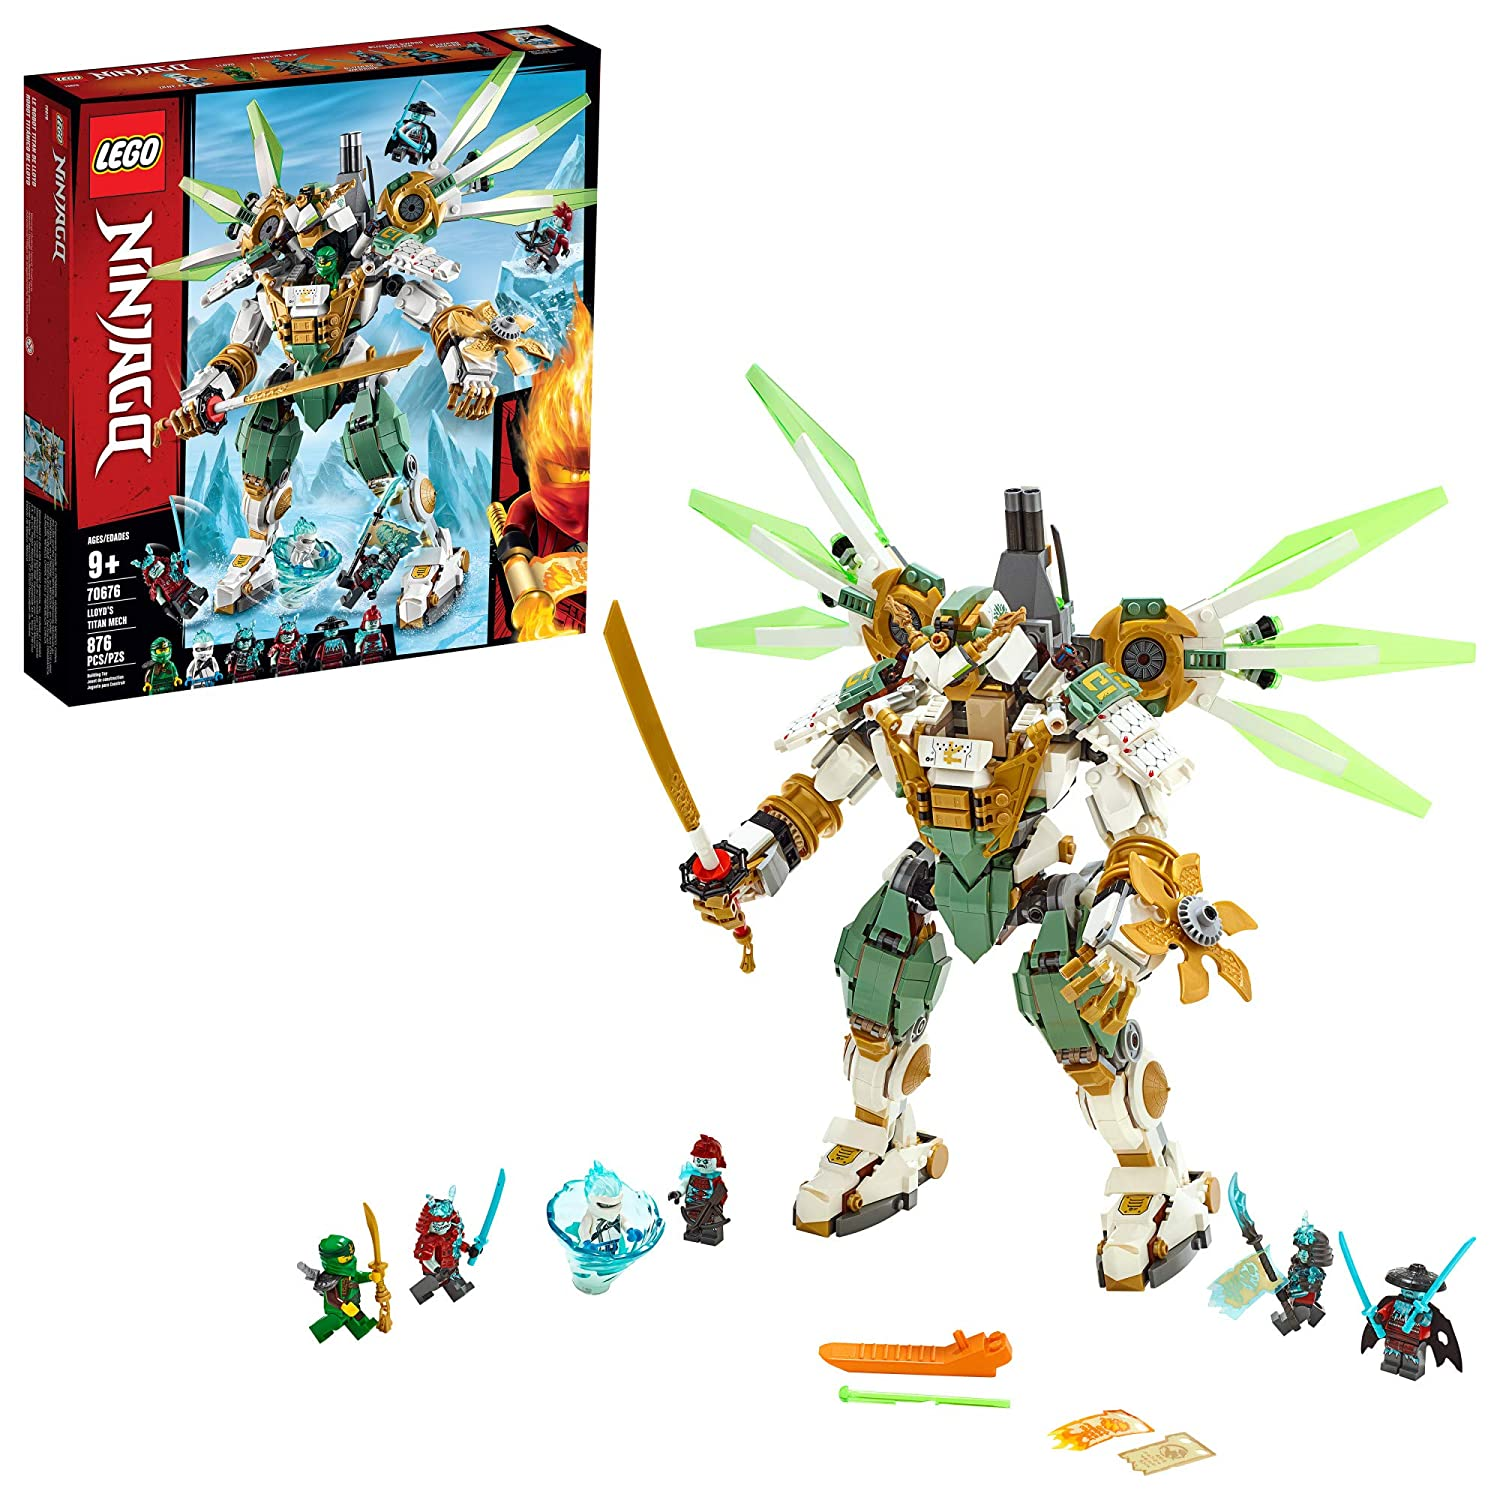 LEGO NINJAGO Lloyd's Titan Mech 70676 Building Kit, New 2019 (876 Pieces)